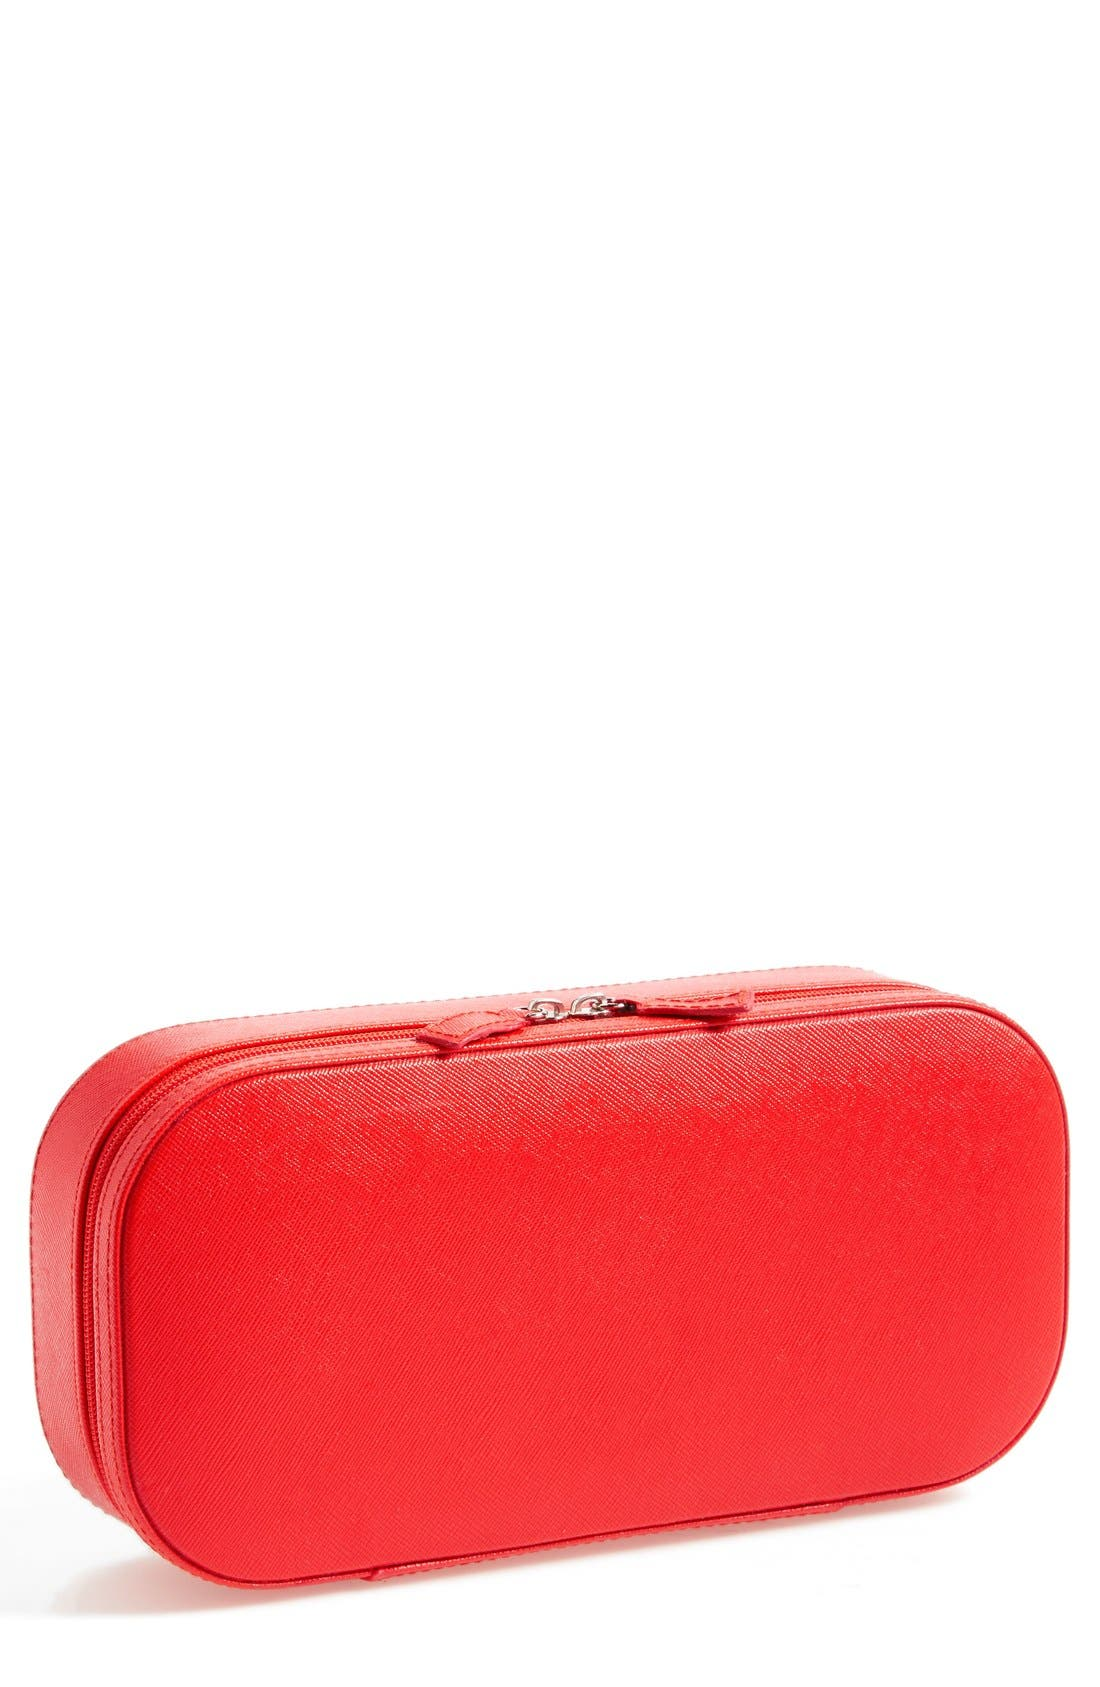 Alternate Image 1 Selected - Nordstrom Travel Jewelry Case